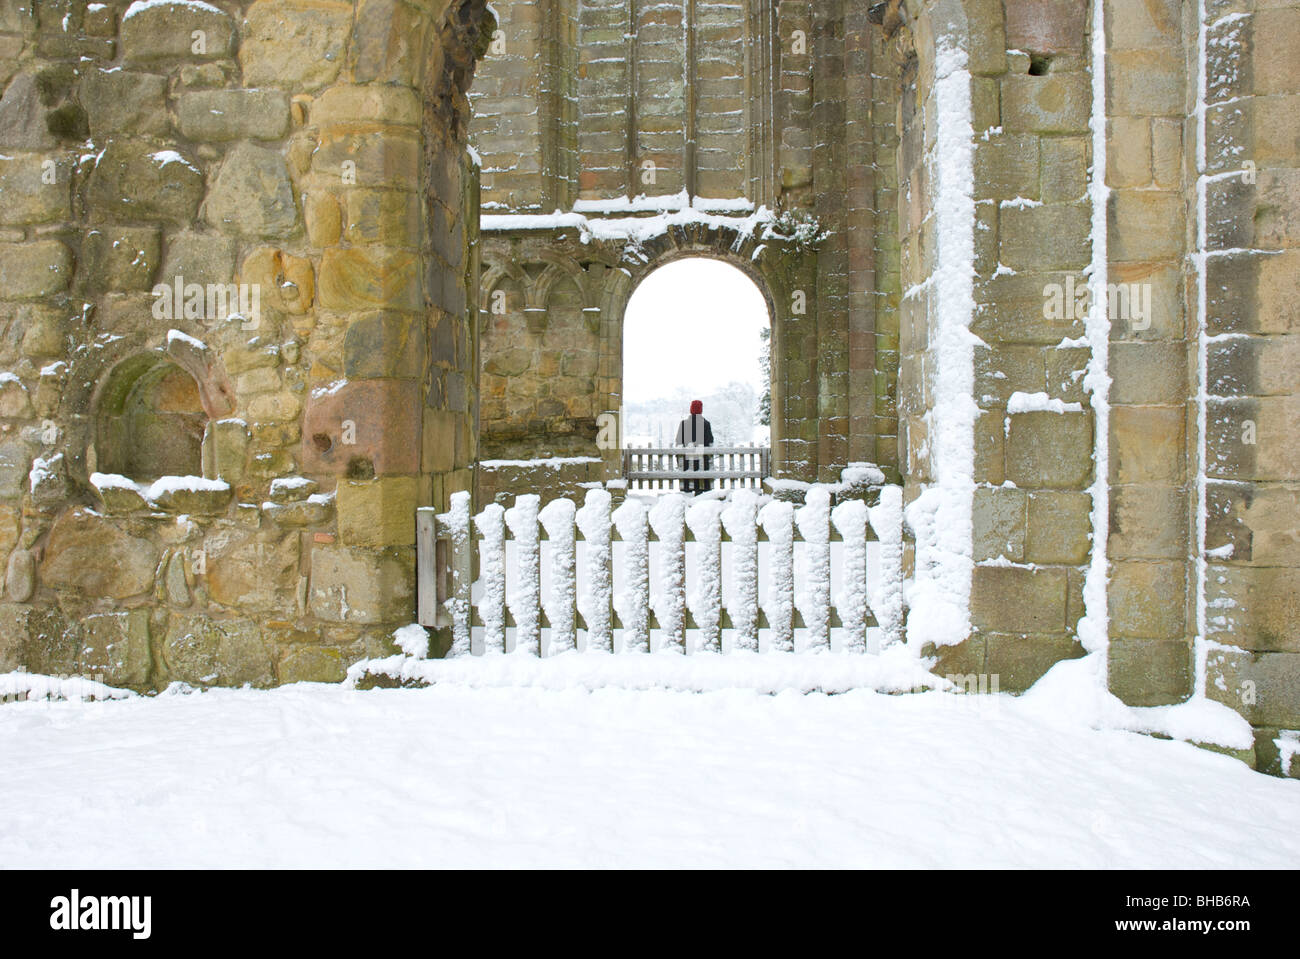 Woman framed by archway, Bolton Abbey, Wharfedale, North Yorkshire, England UK - Stock Image